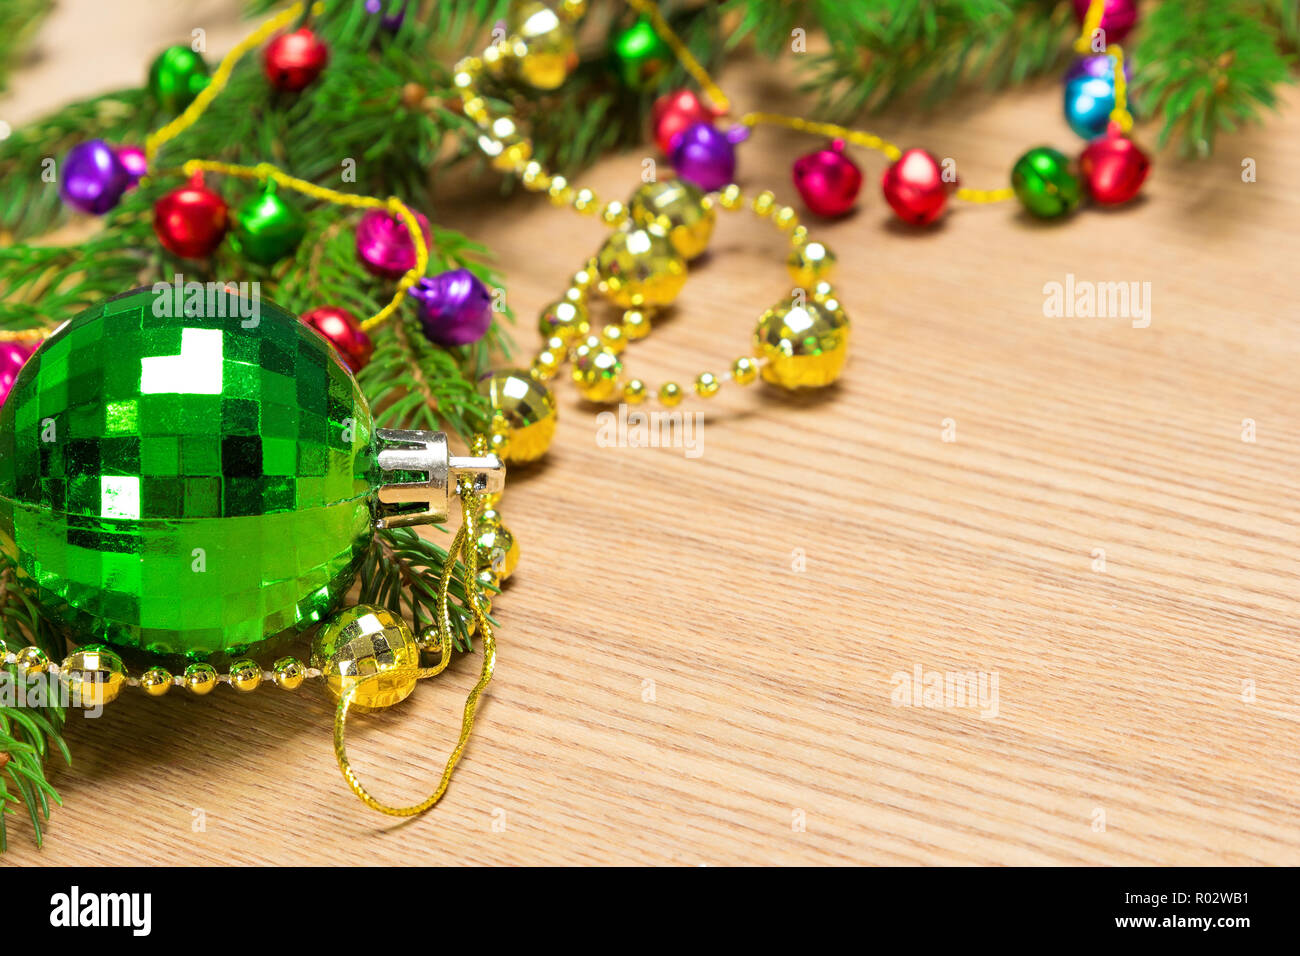 Christmas and New Year festive background. Green Christmas ball, garland of varicolored bells and beads golden color with spruce branches on wooden su - Stock Image